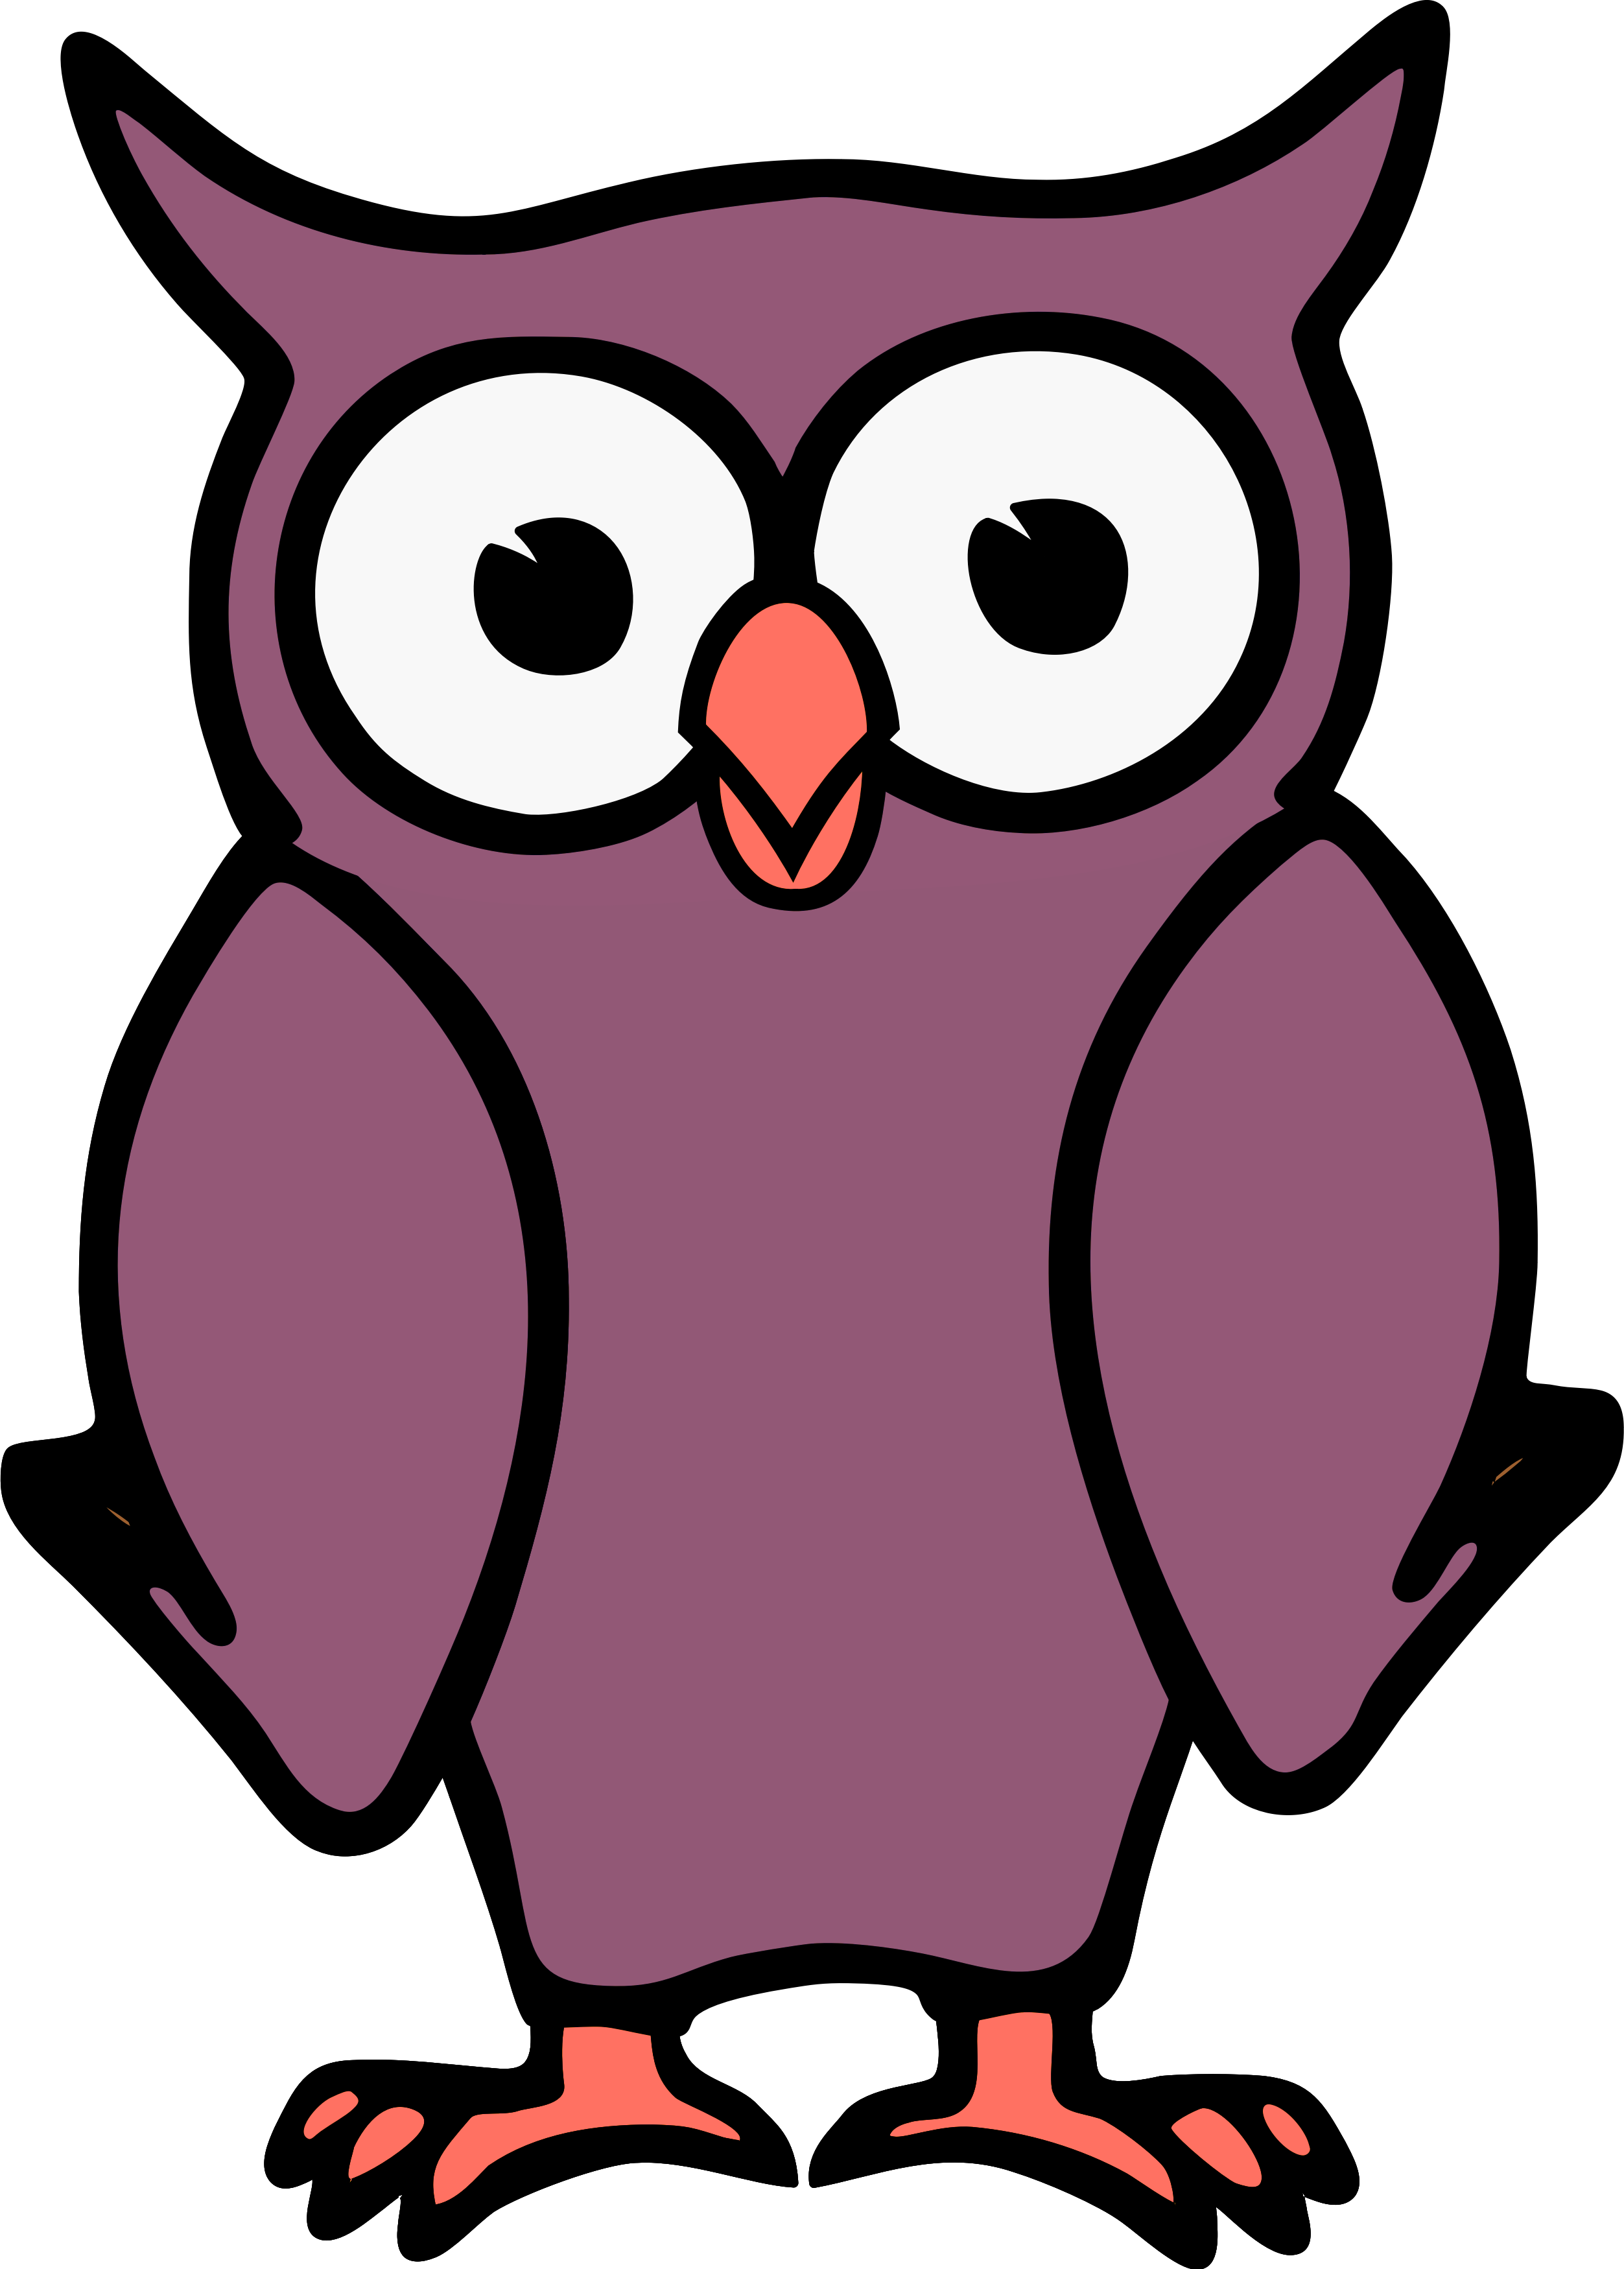 Cartoon image id png. Design clipart owl banner transparent library